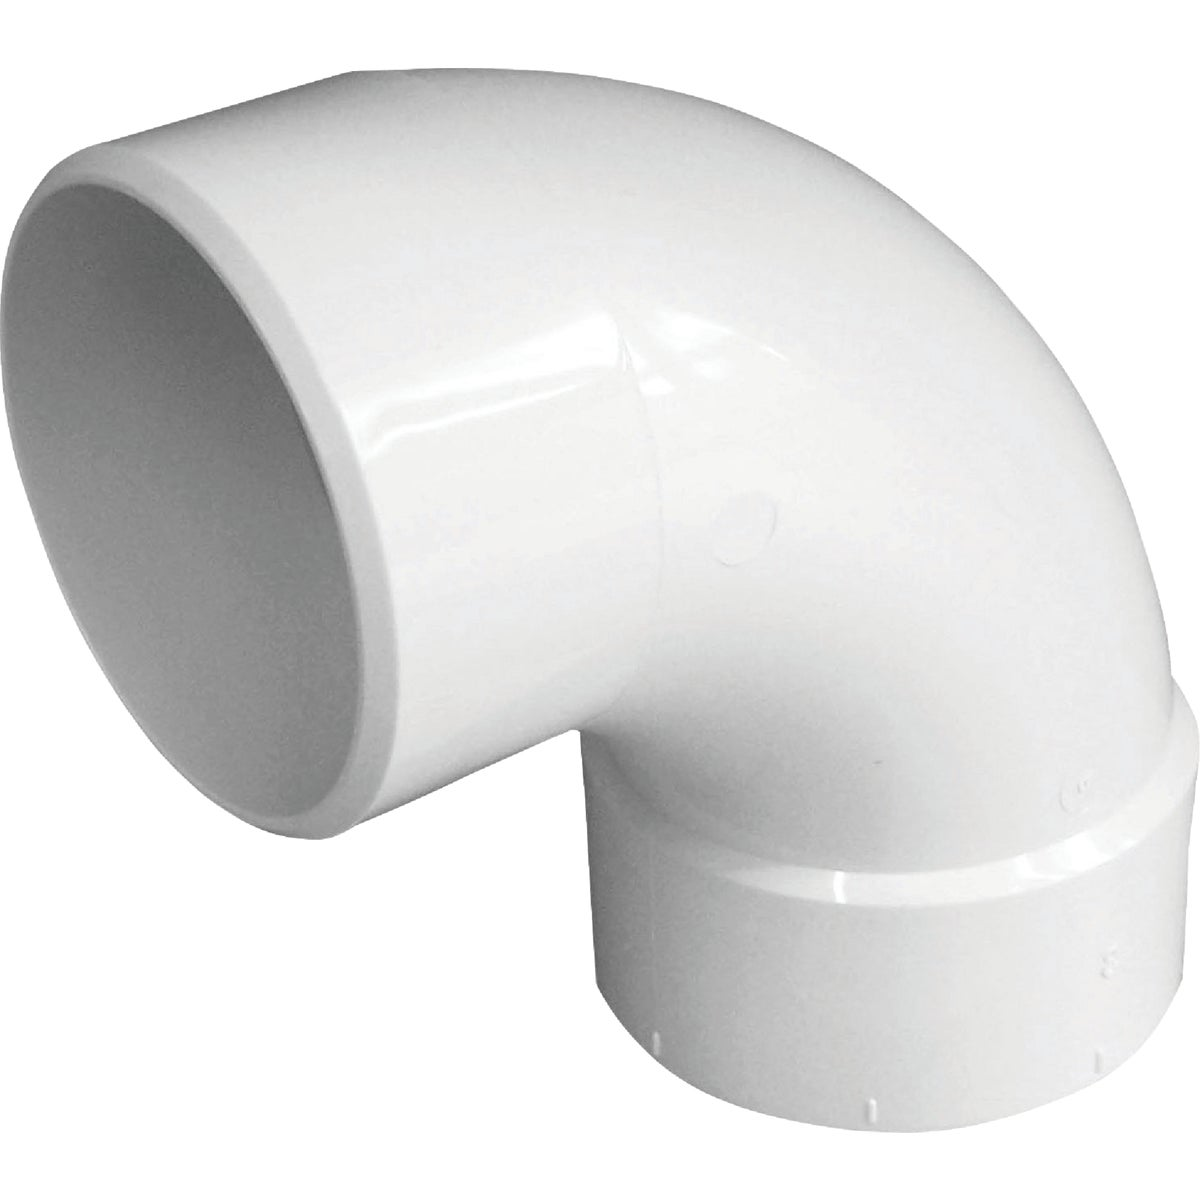 "4"" 90D LONG SWP ST ELBOW - 42940 by Genova Inc"